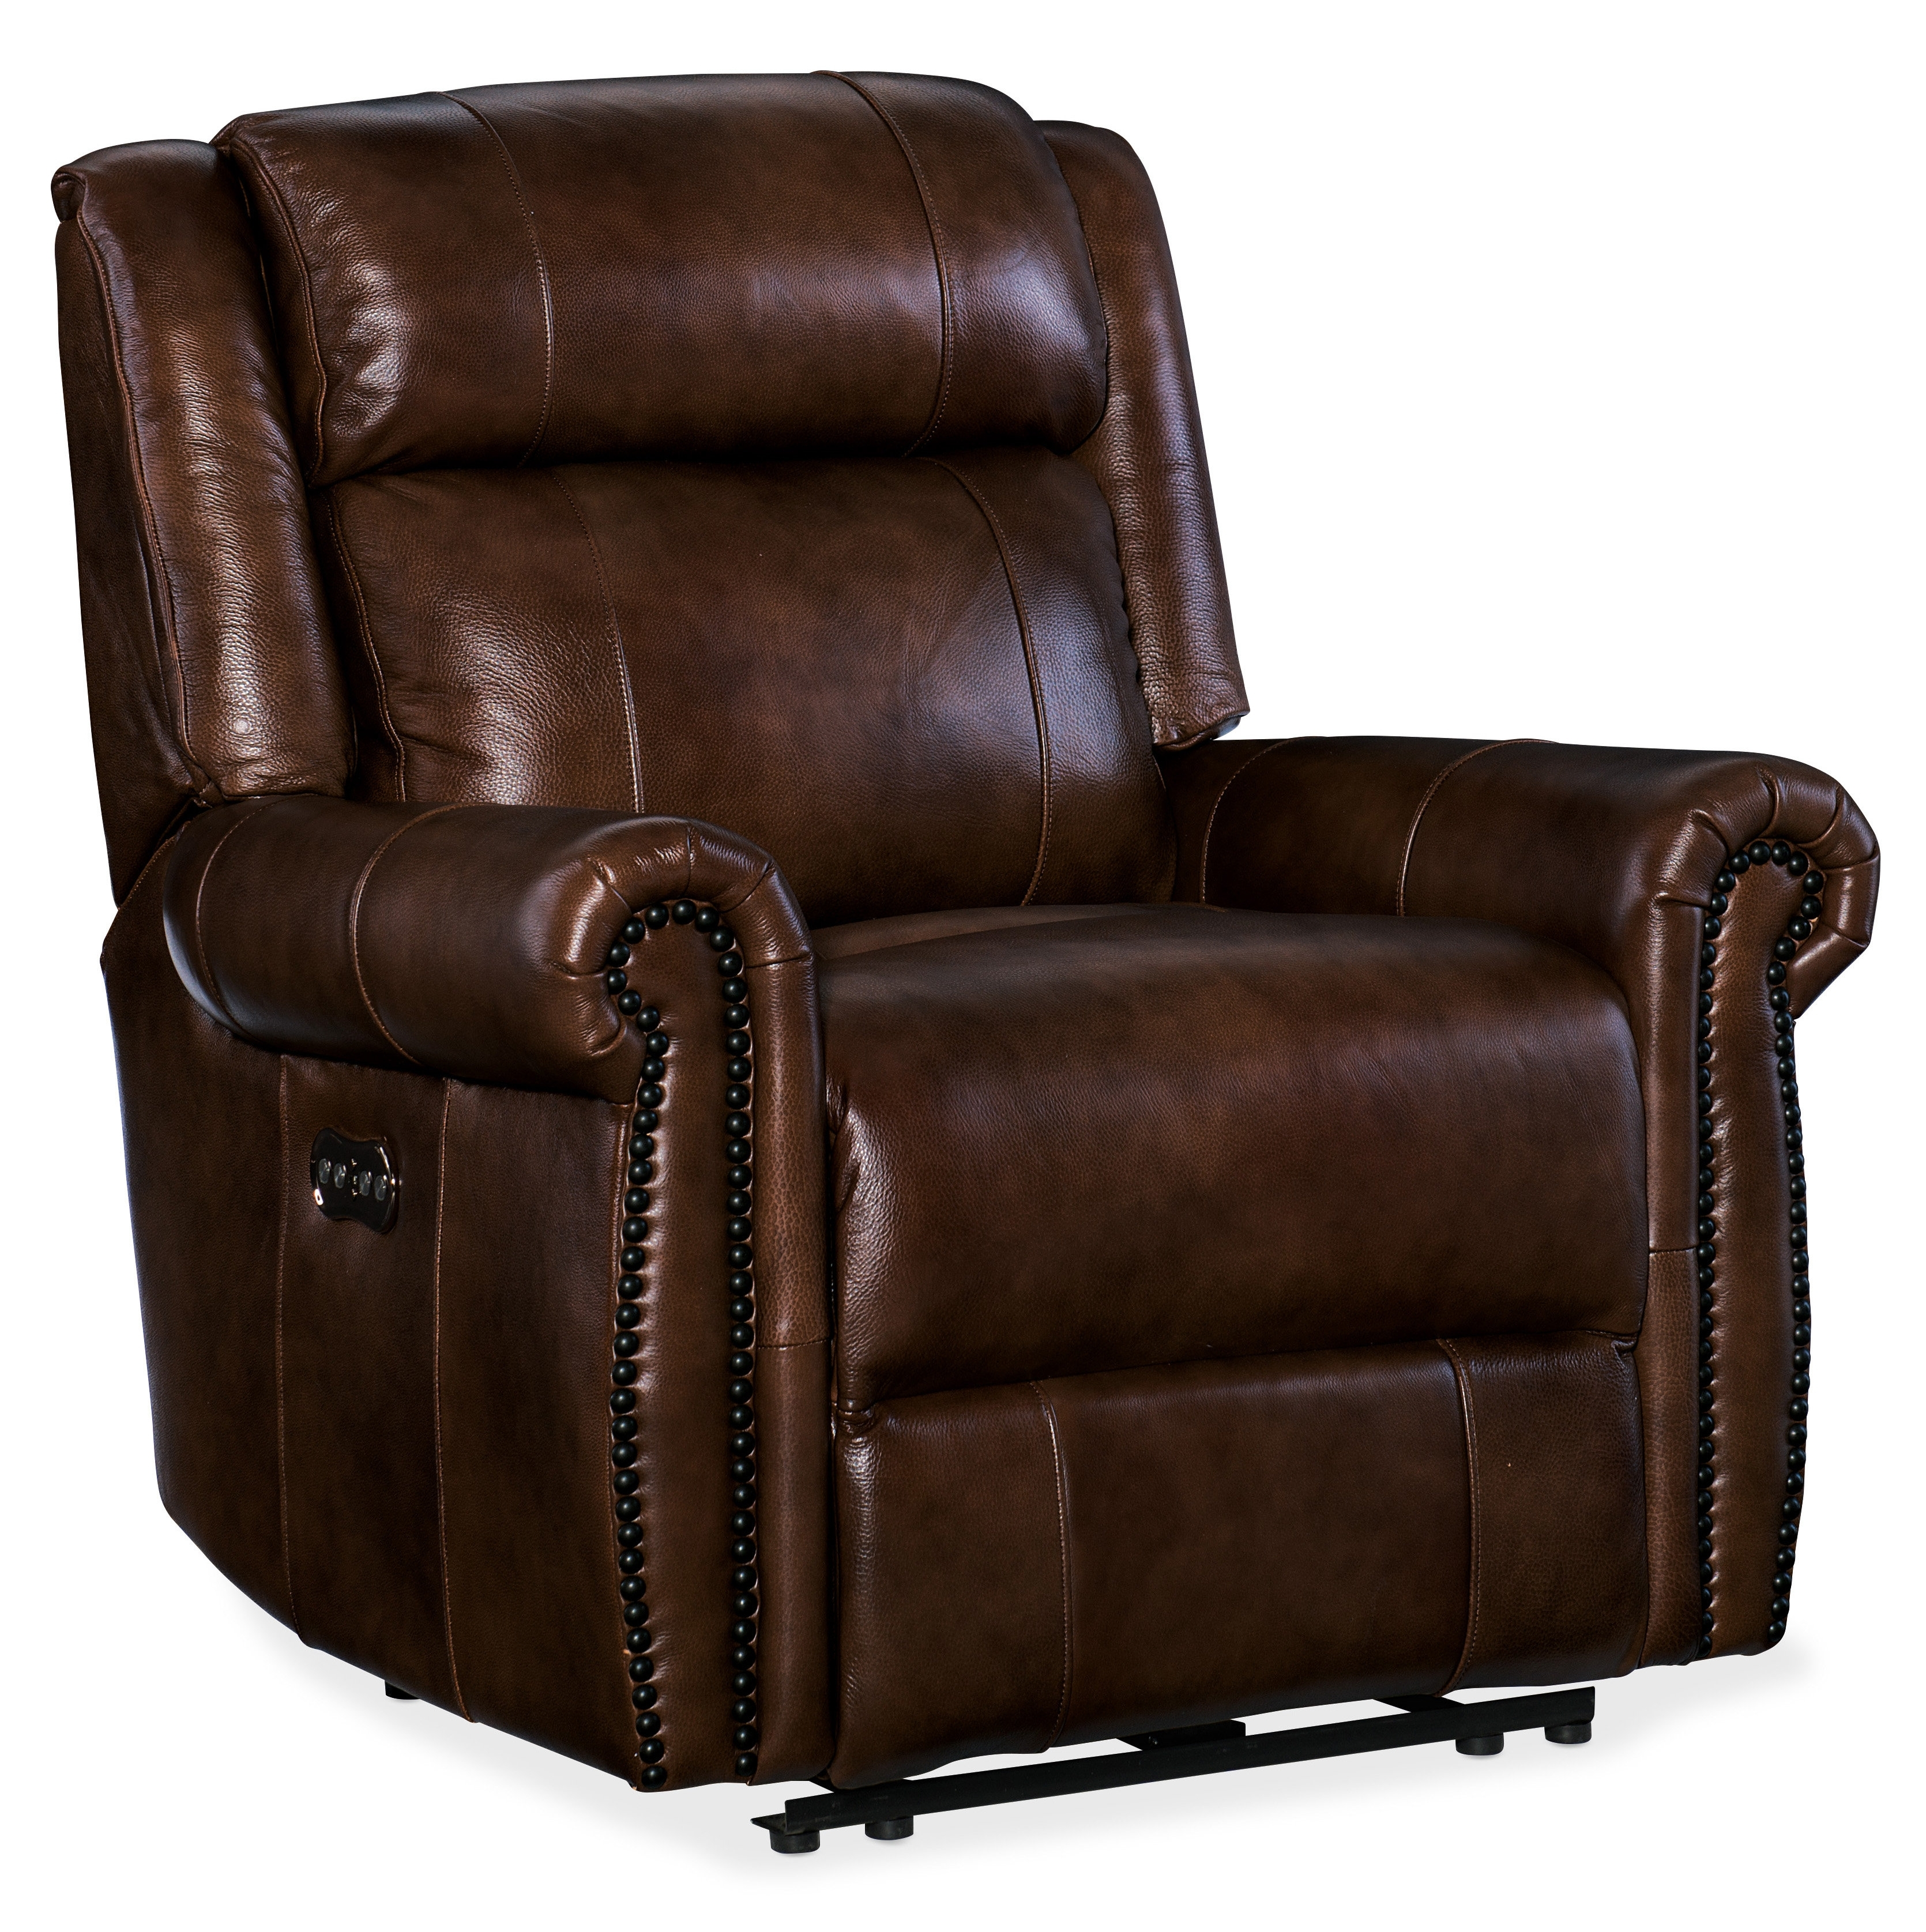 Hooker Furniture Esme Leather Power Recliner With Power Headrest Regarding Clyde Grey Leather 3 Piece Power Reclining Sectionals With Pwr Hdrst & Usb (View 10 of 25)